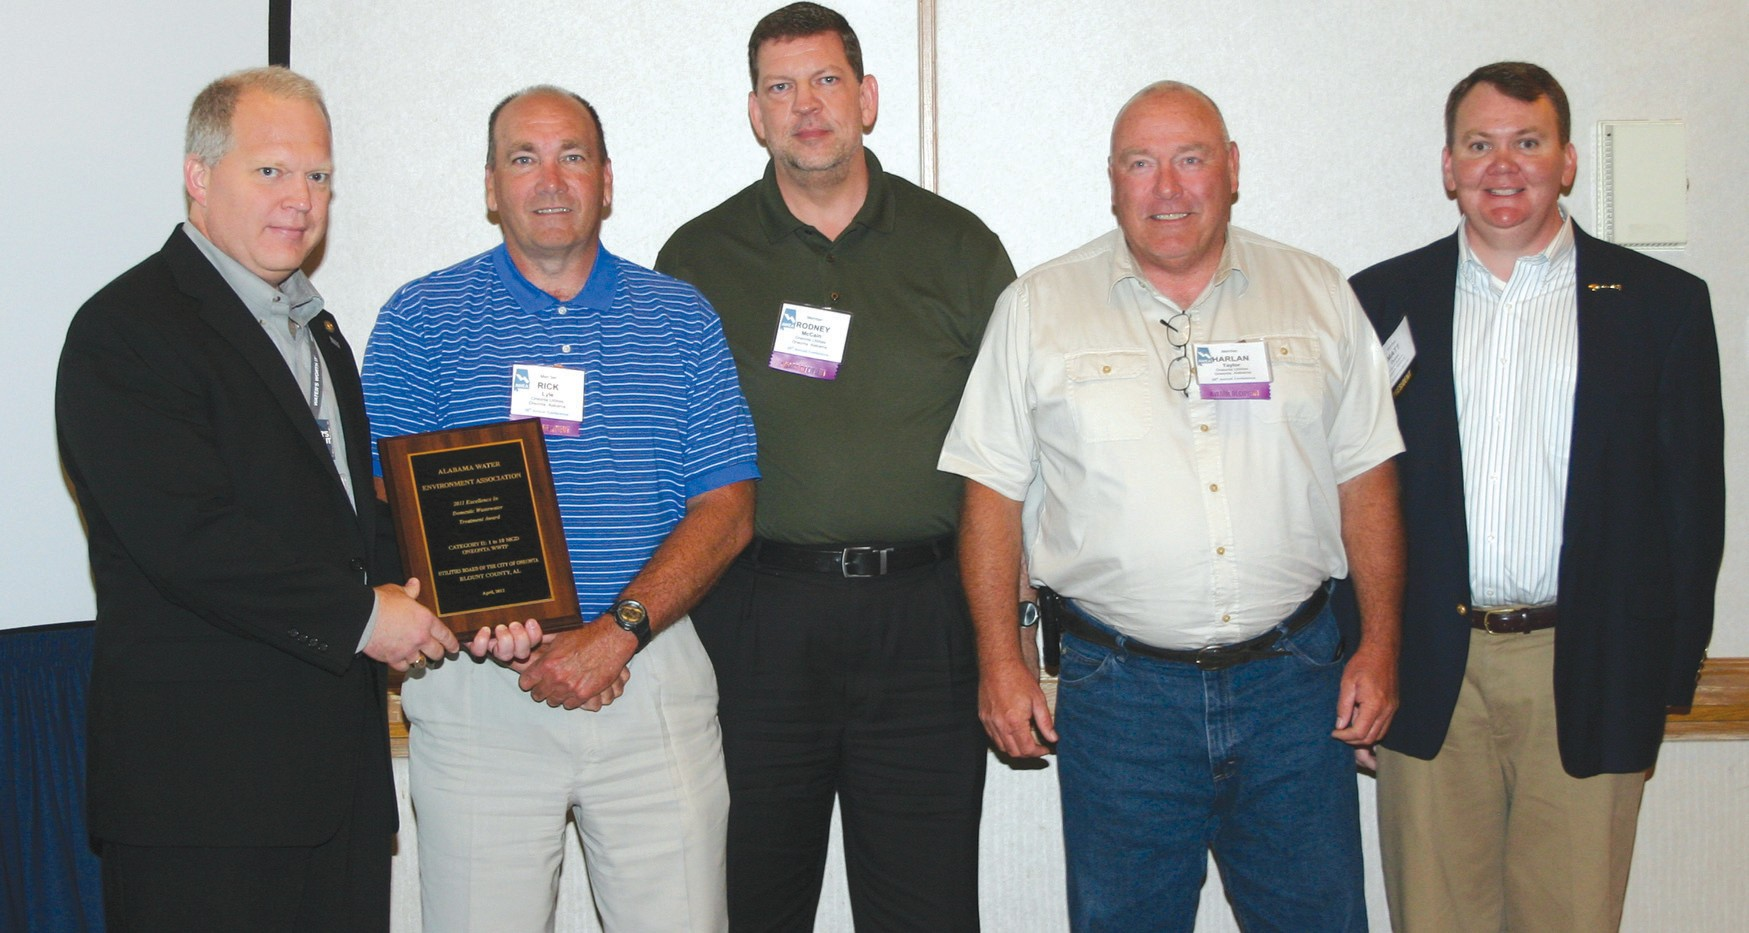 Three Oneonta Utilities employees pose with Alabama Water Environment Association executives as they celebrate awards for outstanding performance at the association's annual conference on April 16. From left, Scott Cummings, Water Environment Foundation member; Rick Lyle, Oneonta wastewater superintendent, holding his Operator of the Year individual award; Rodney McCain, Oneonta Utilities general manager; Harlan Taylor, Oneonta wastewater operator; and Matt Dunn, Alabama Water Environment Association president.